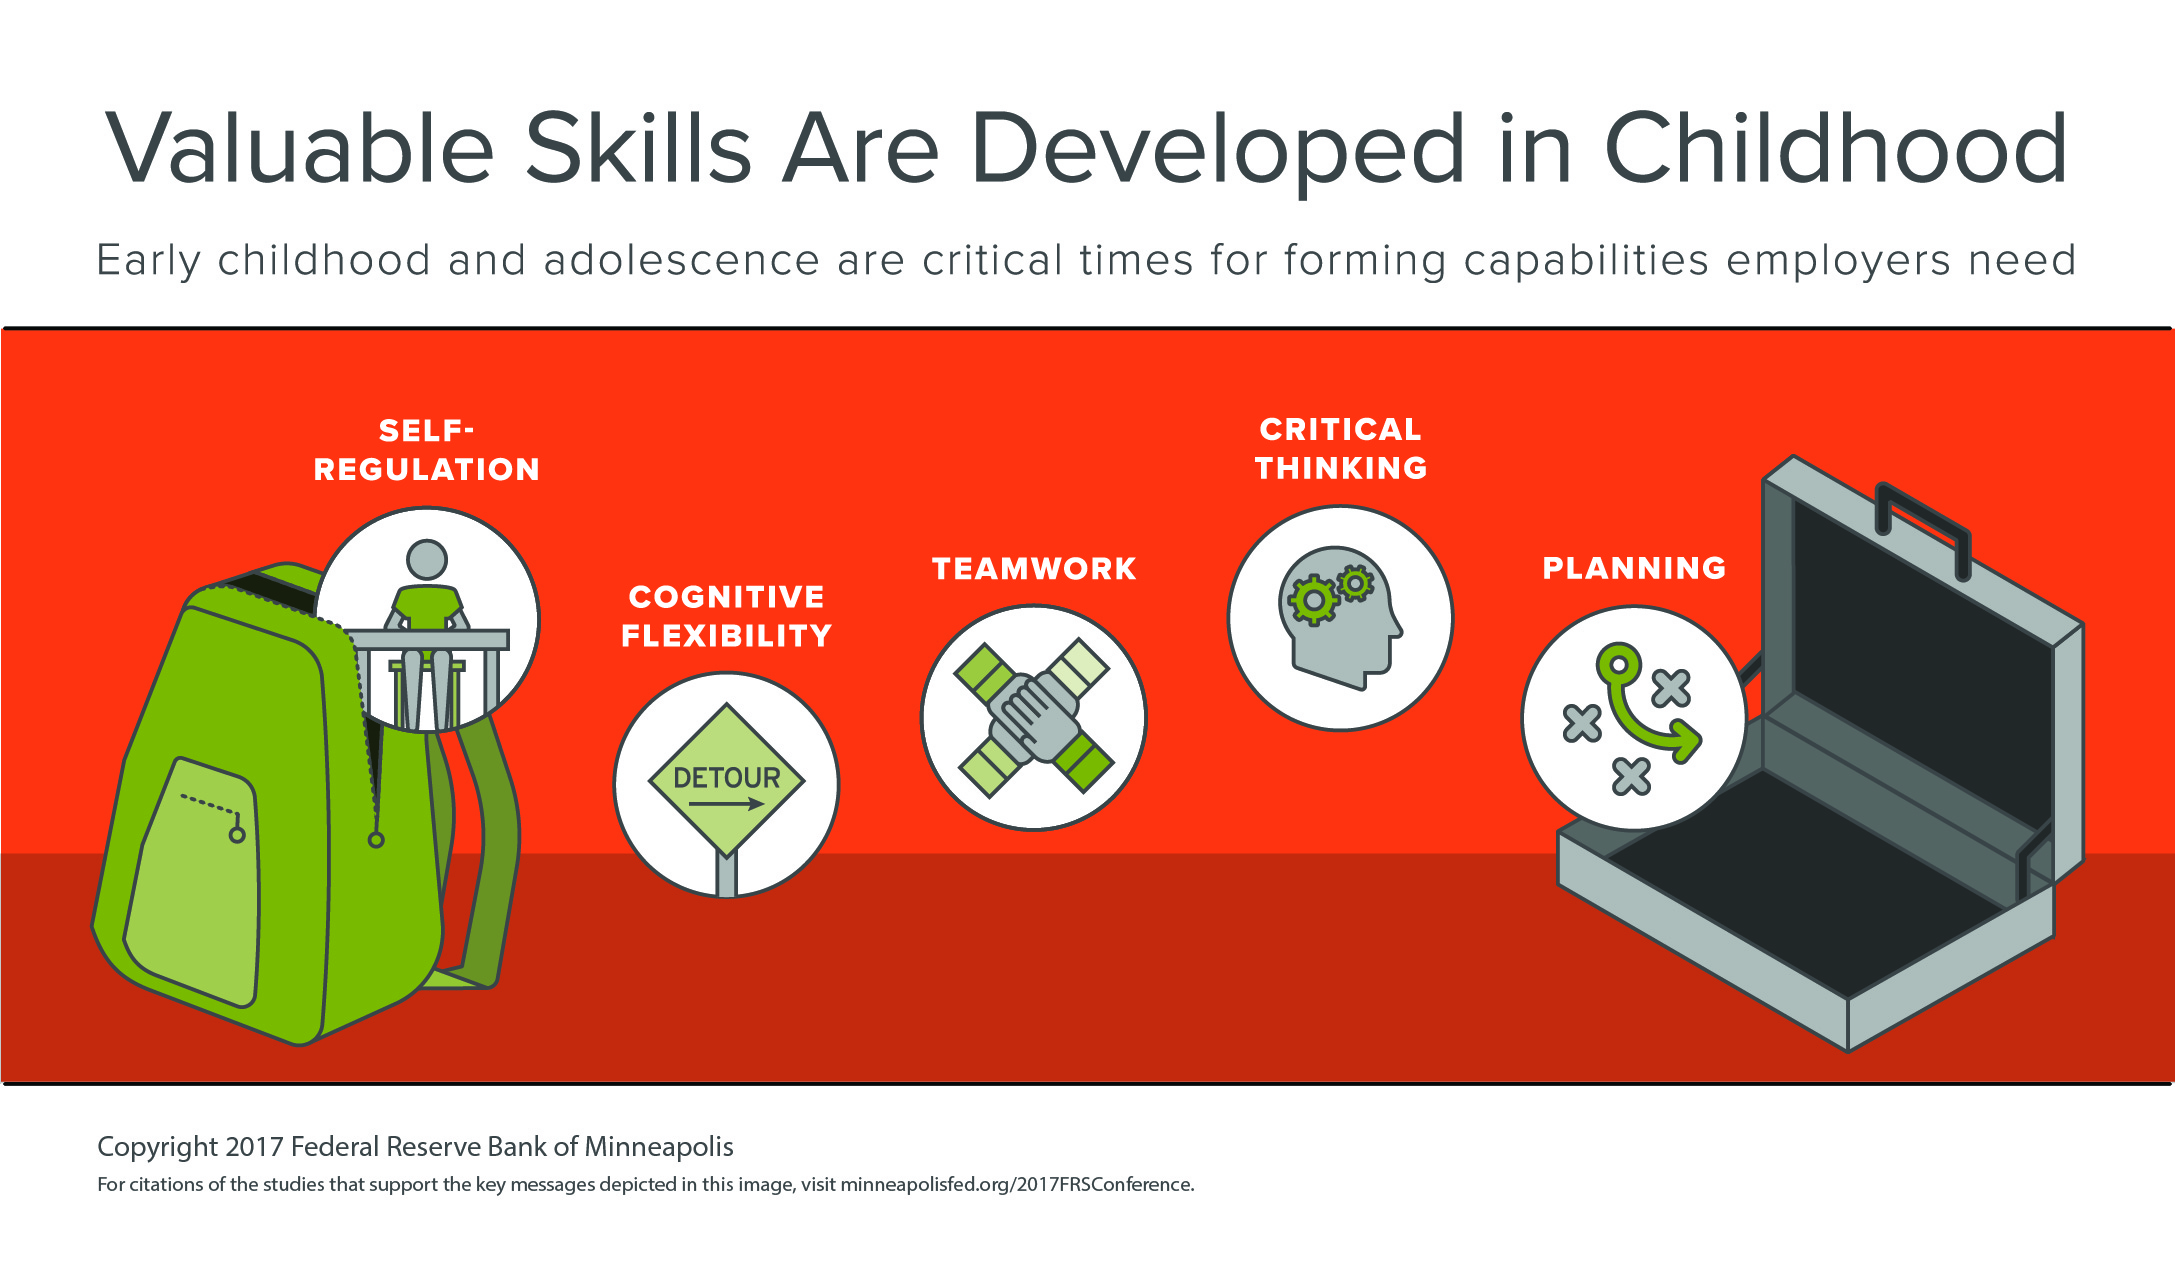 Valuable Skills Are Developed in Childhood